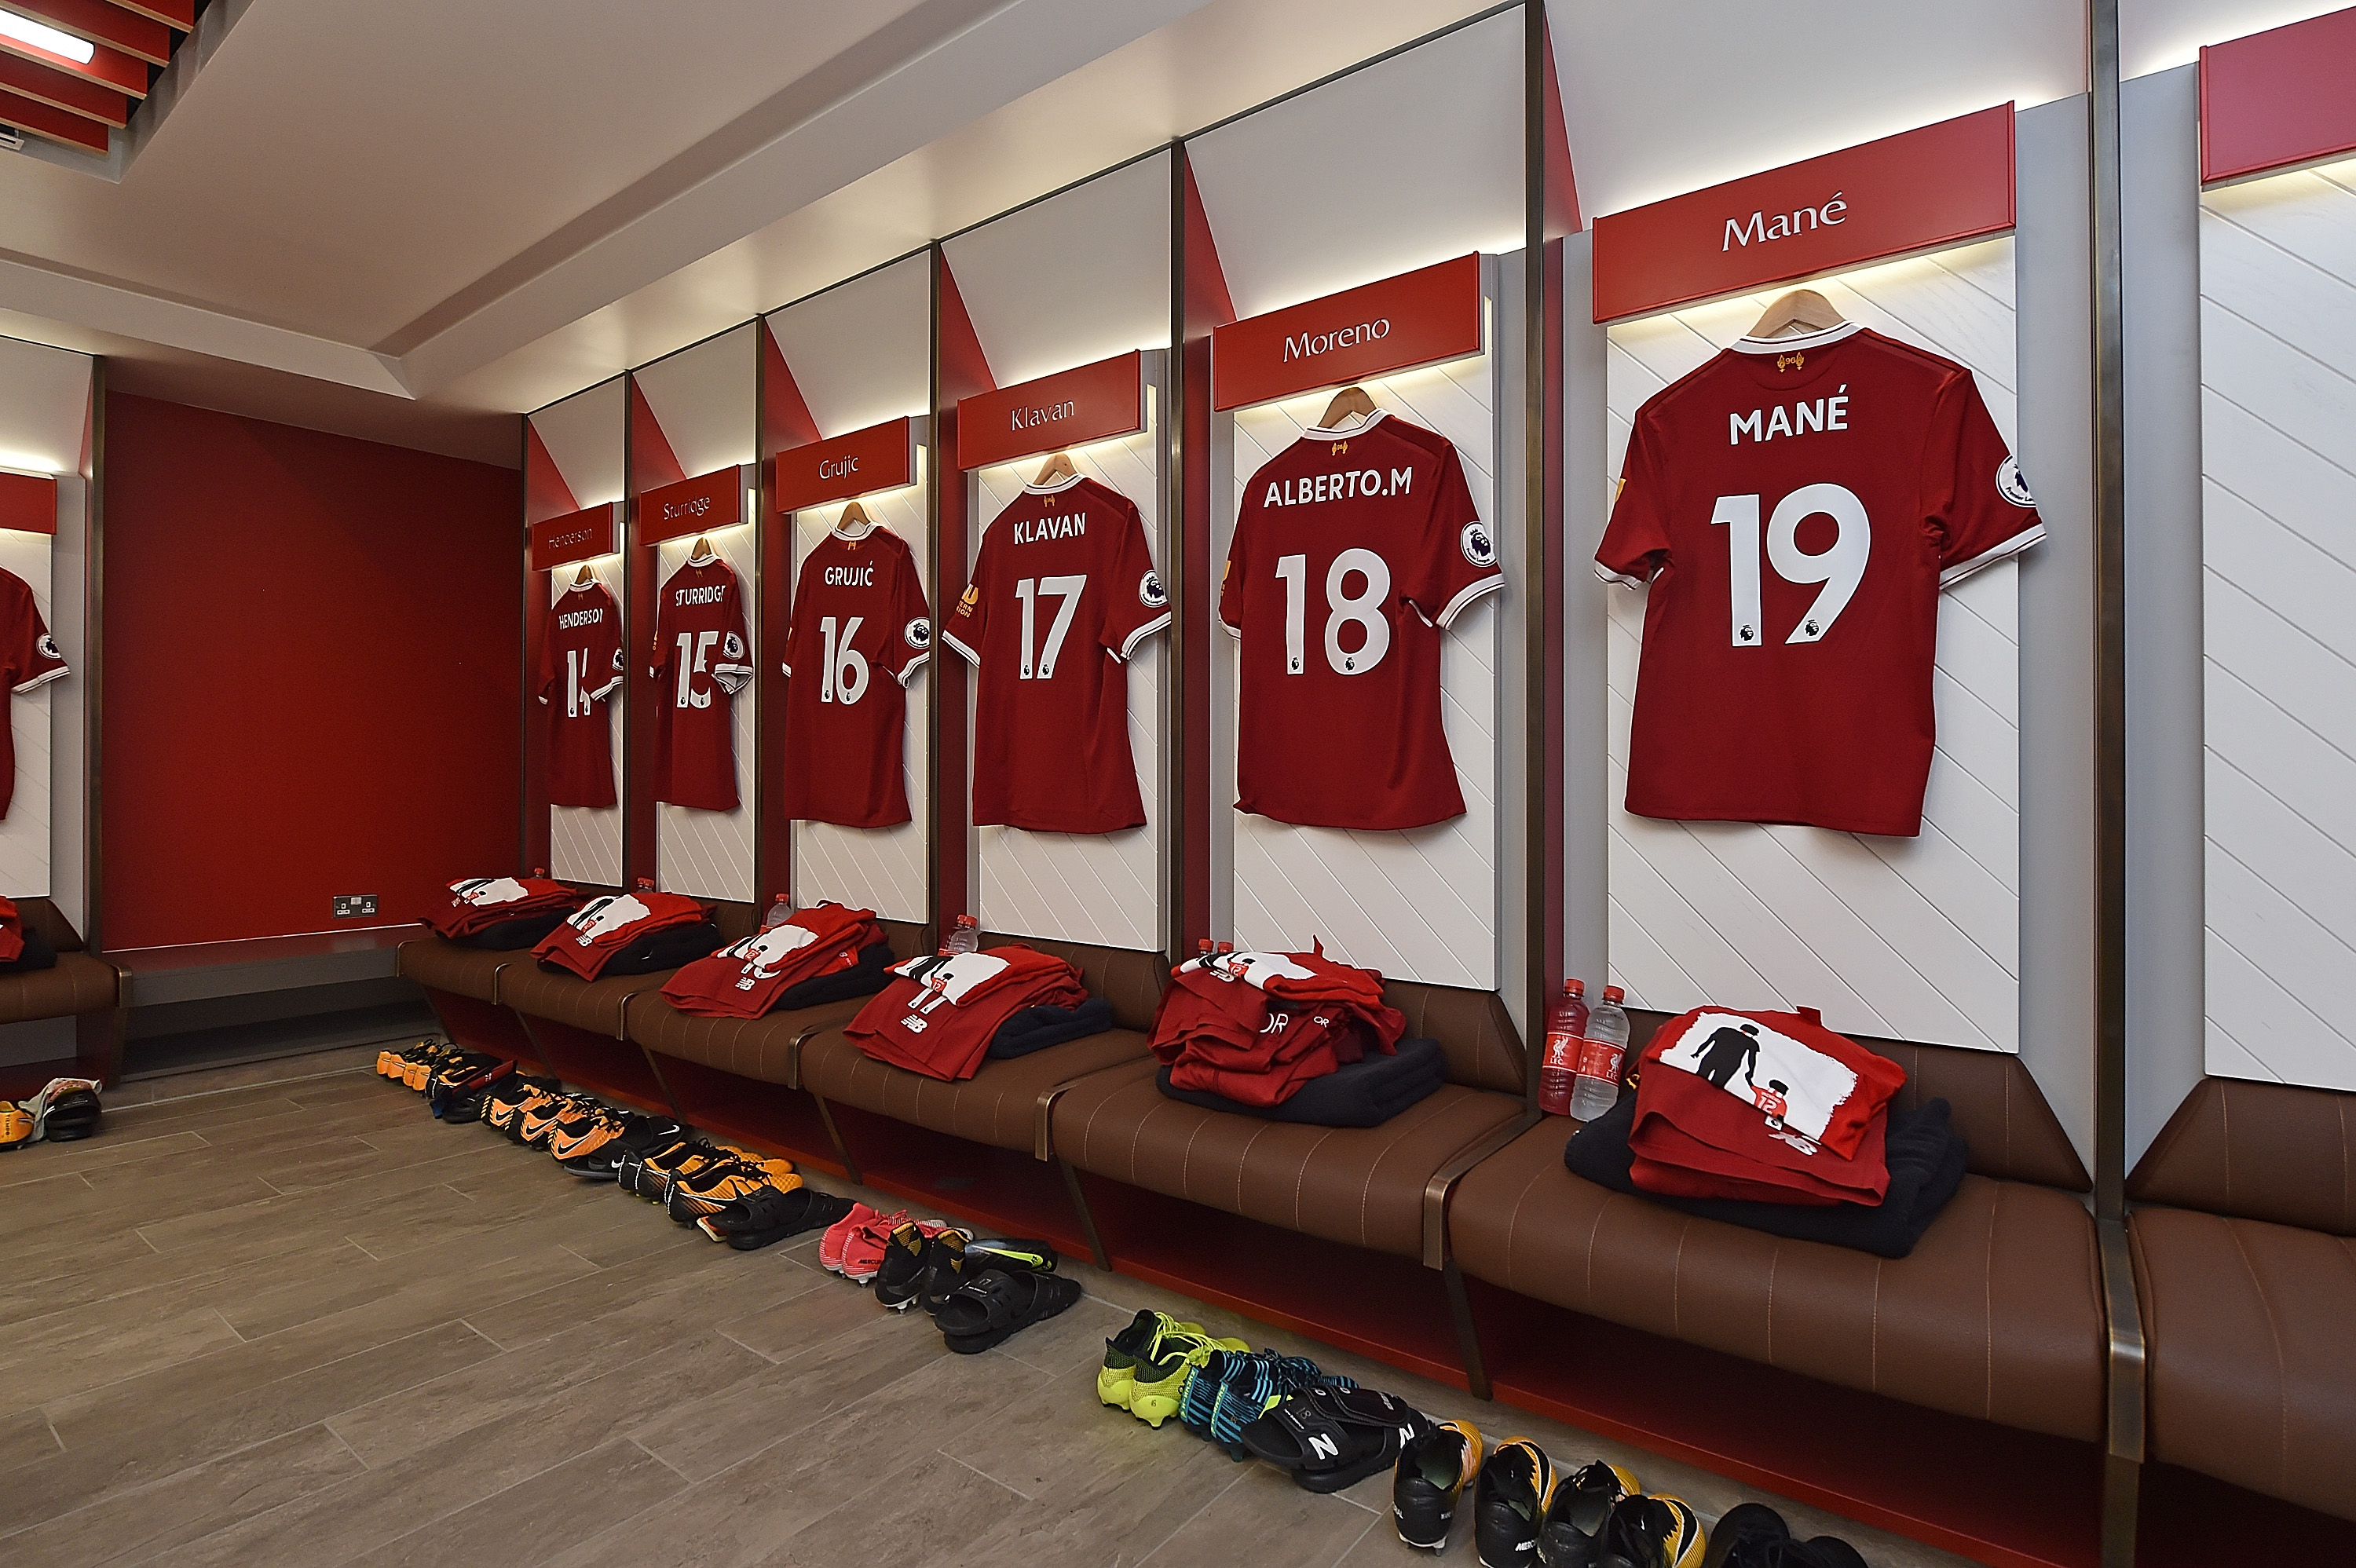 Liverpool shirts hanging in the locker room